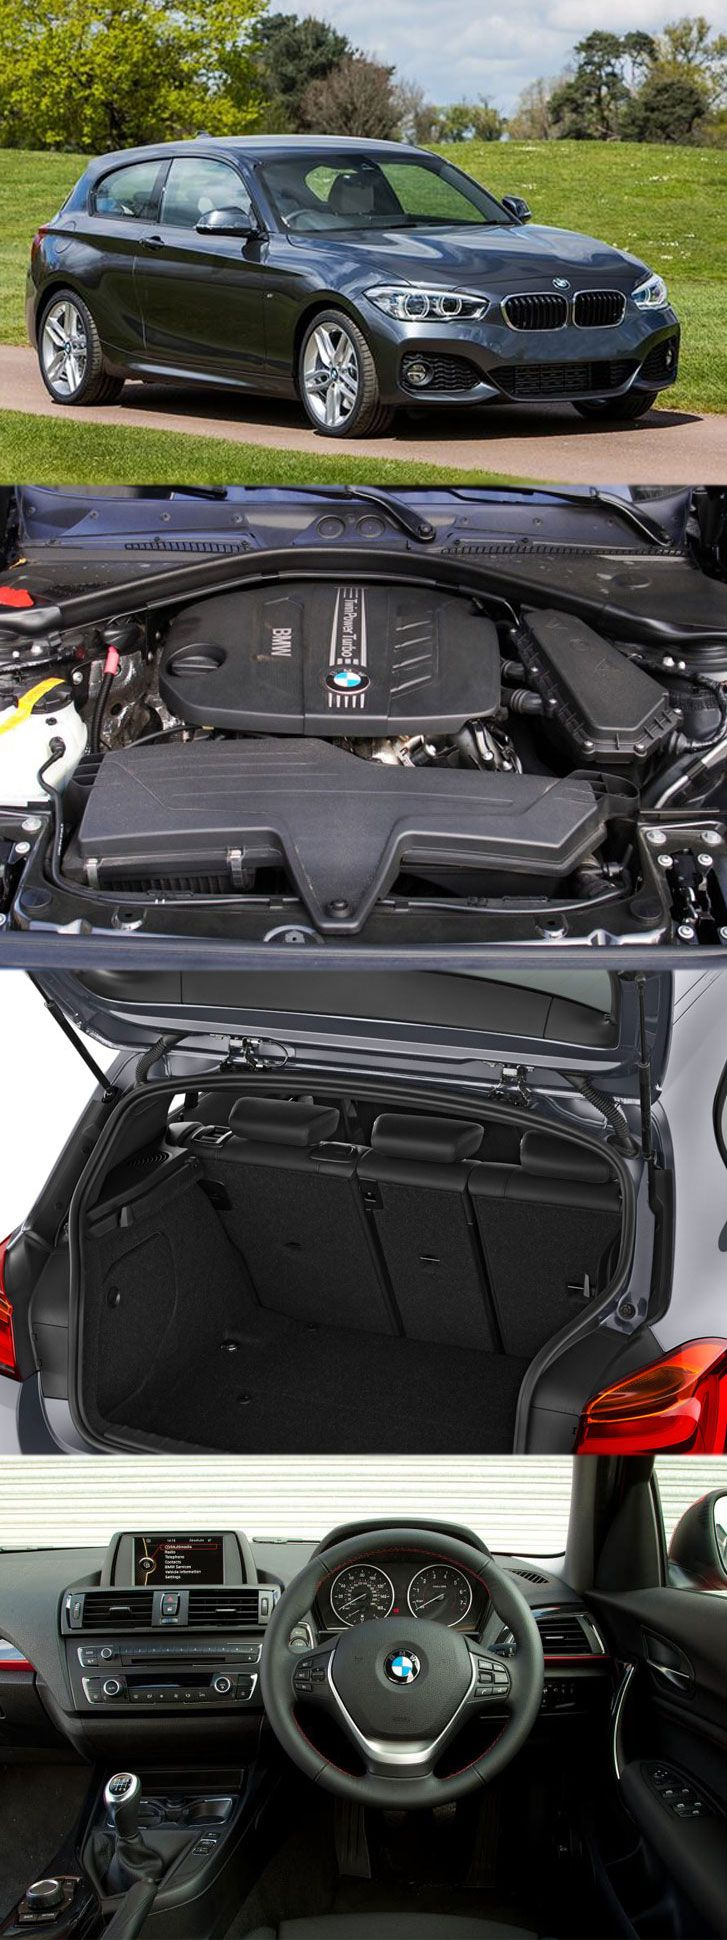 Bmw 118d engine and performance for more info https www